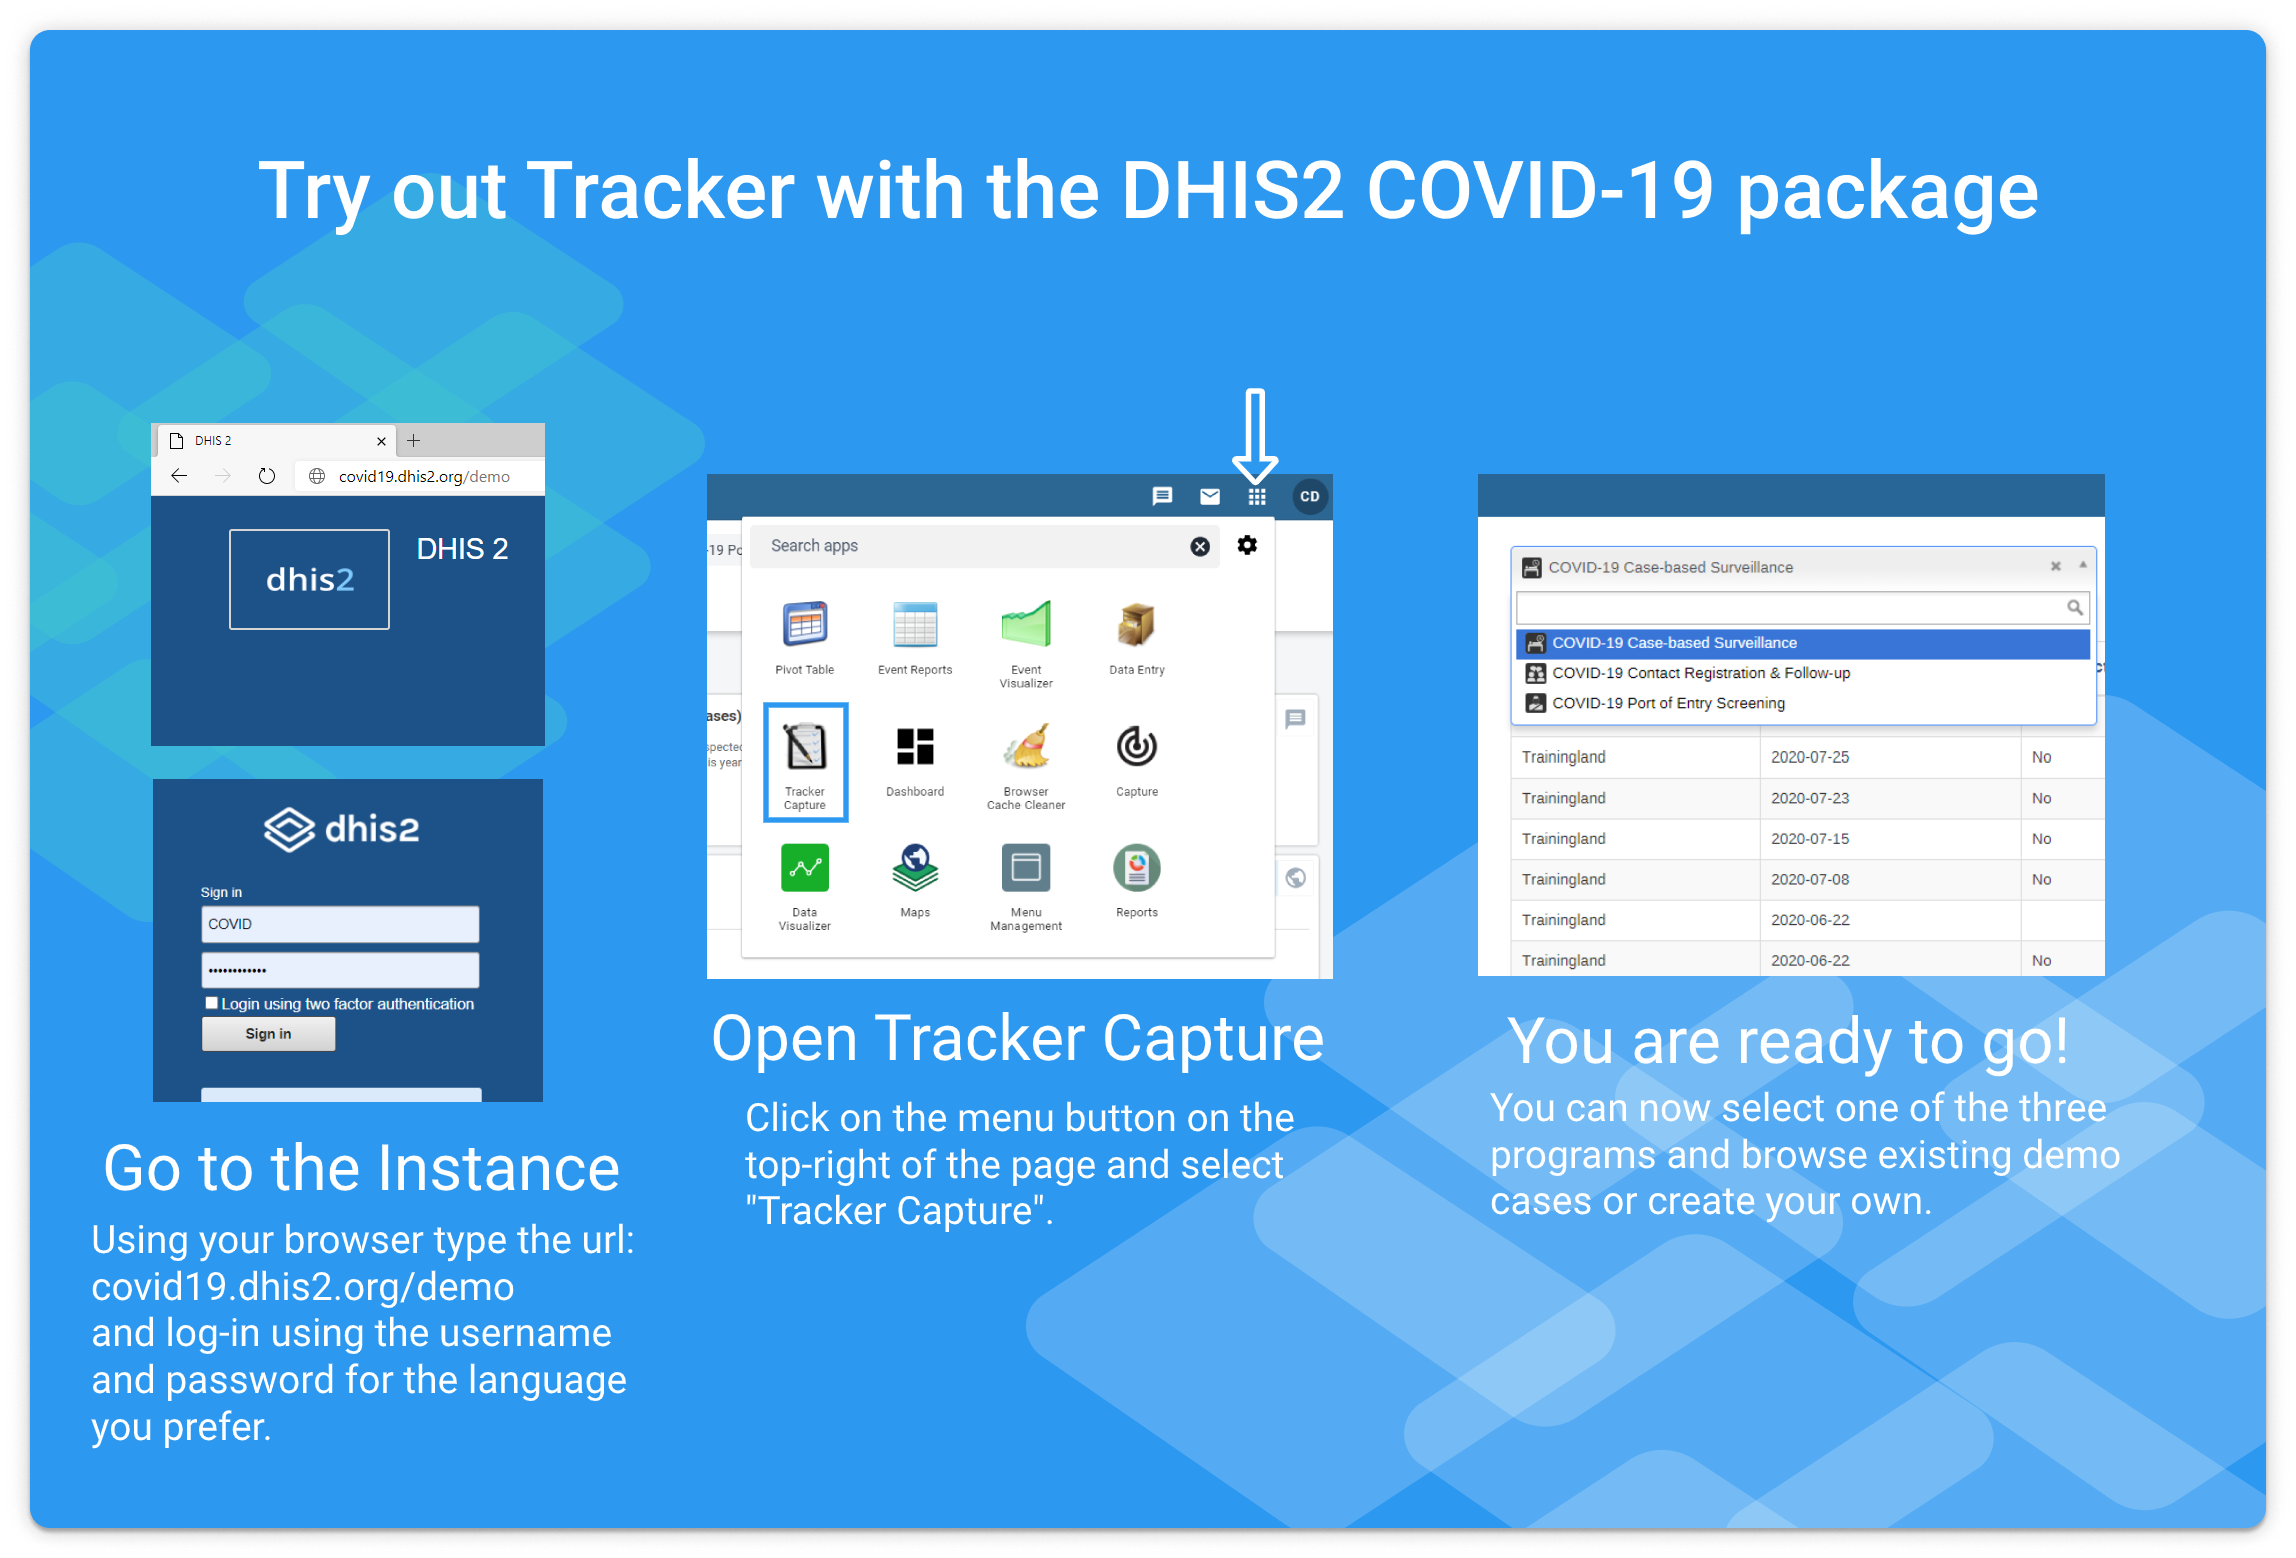 Try out DHIS2 Tracker